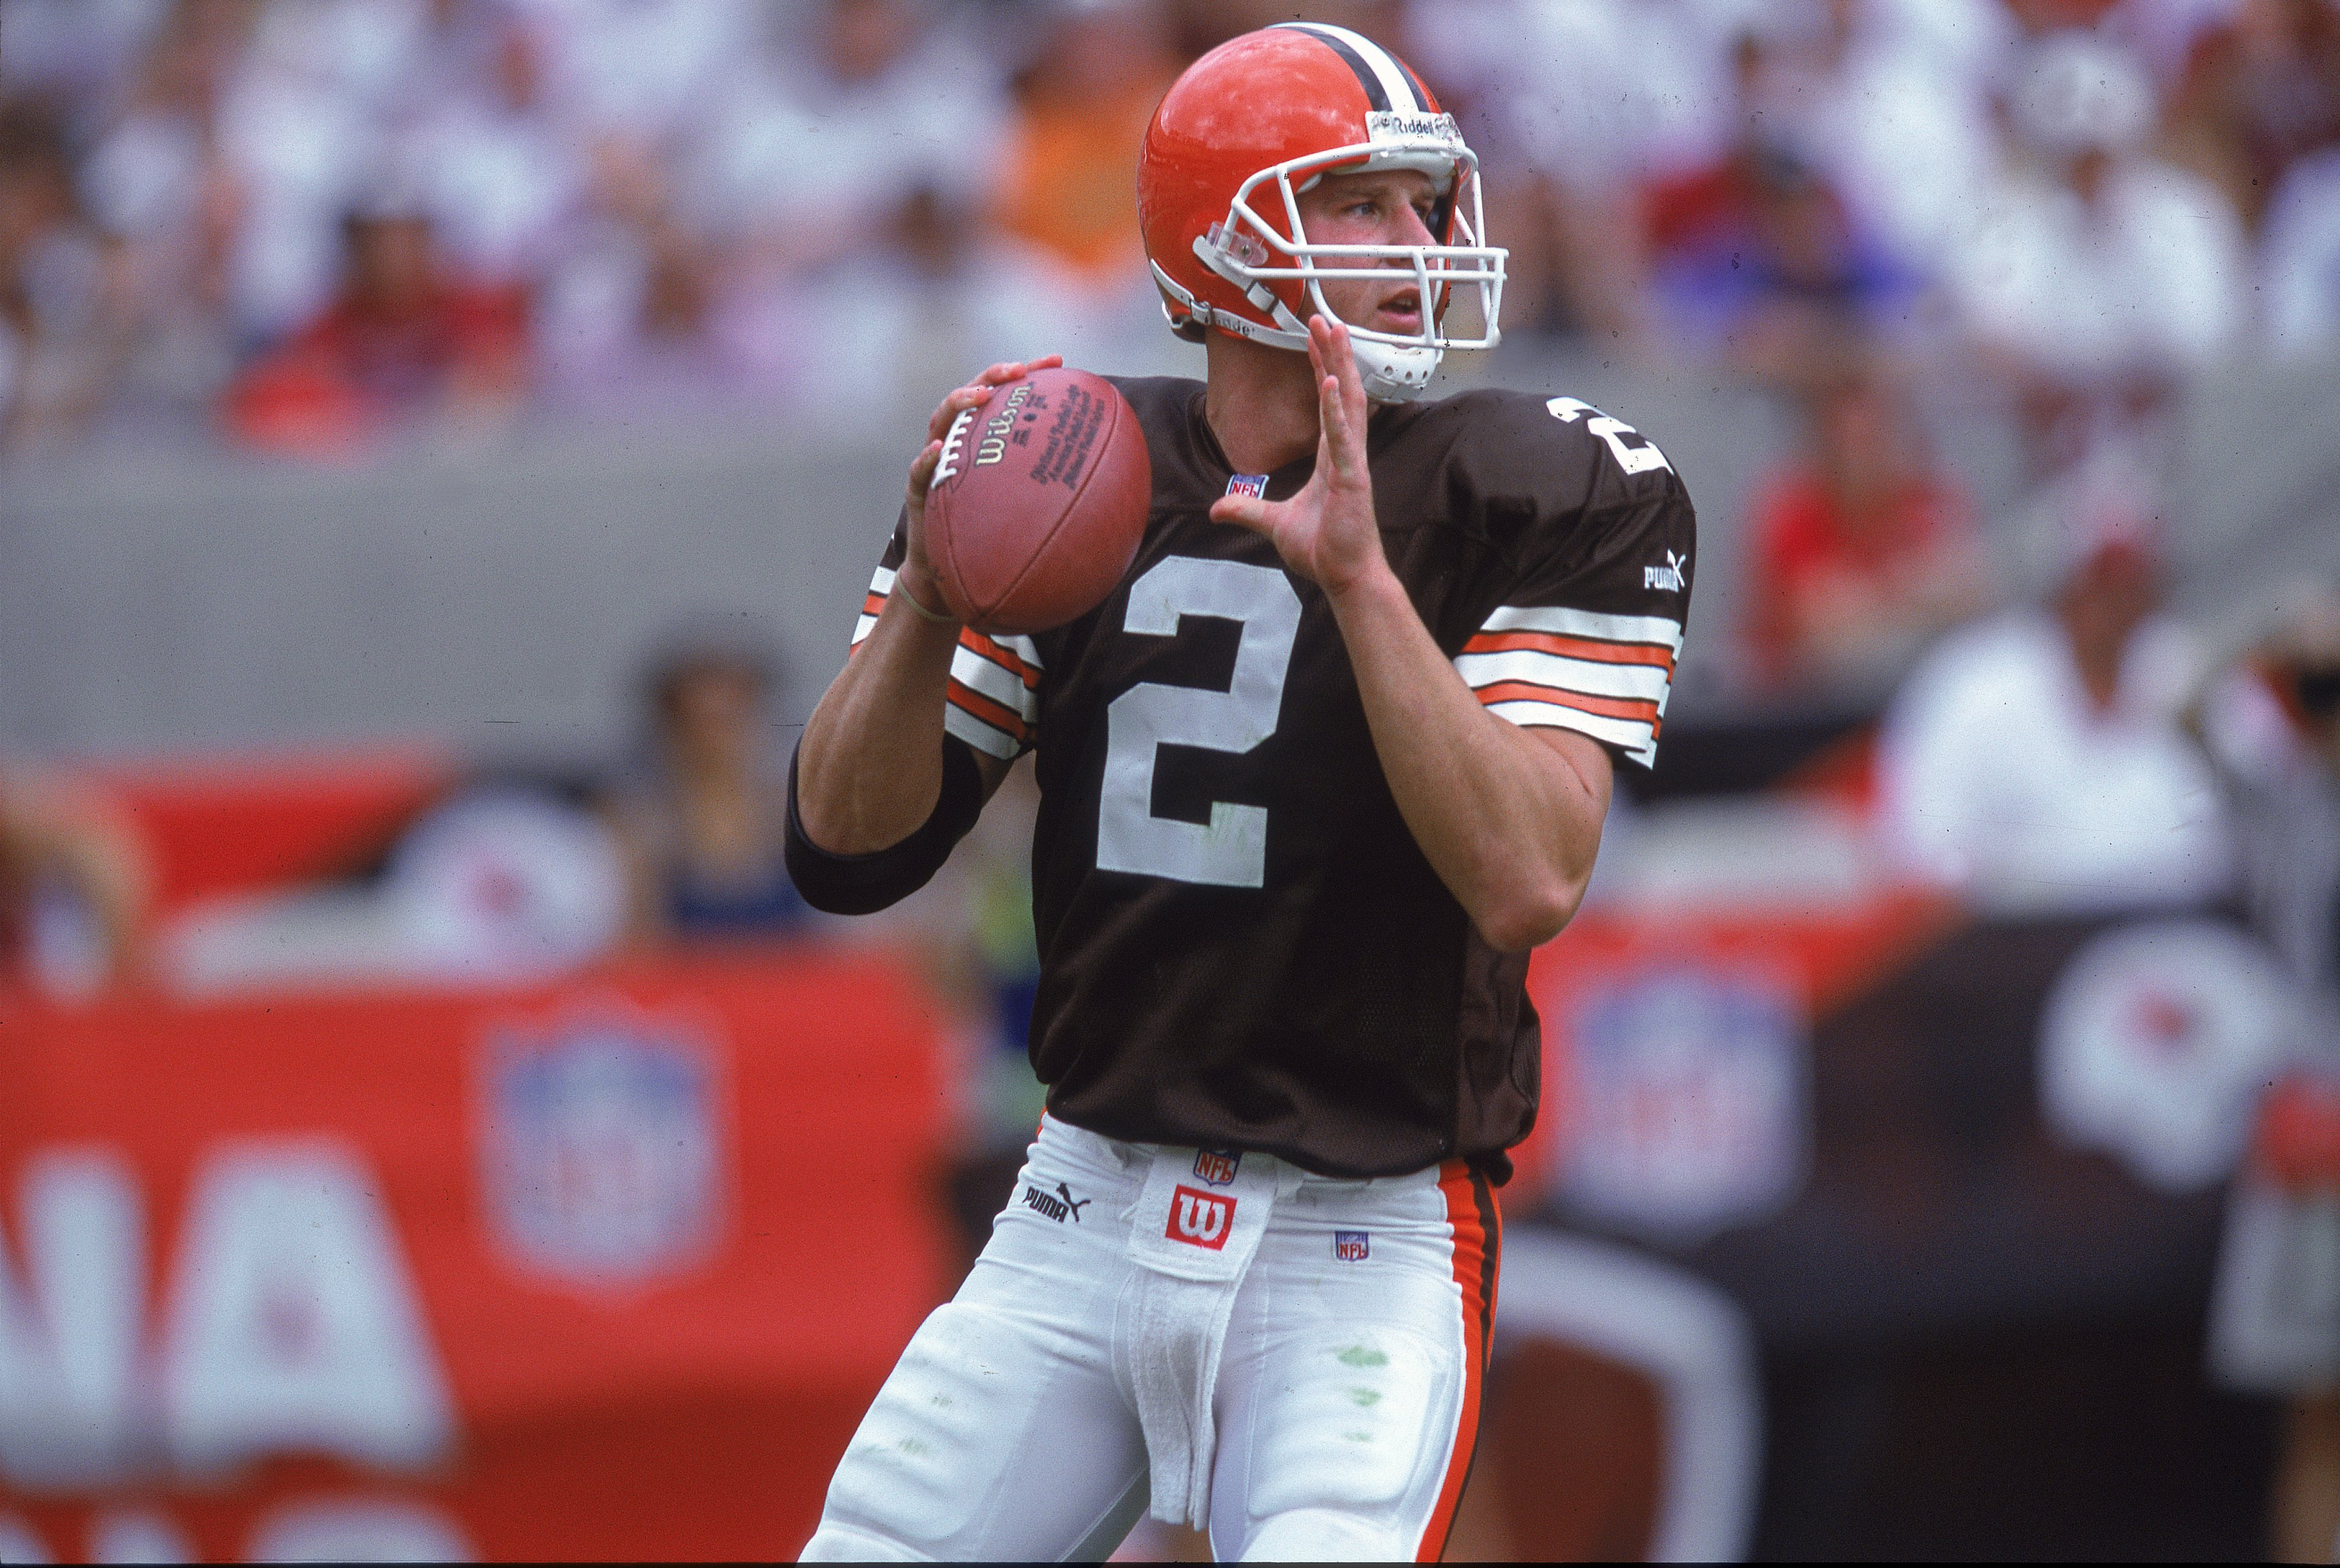 Tim Couch College - Couch Collection